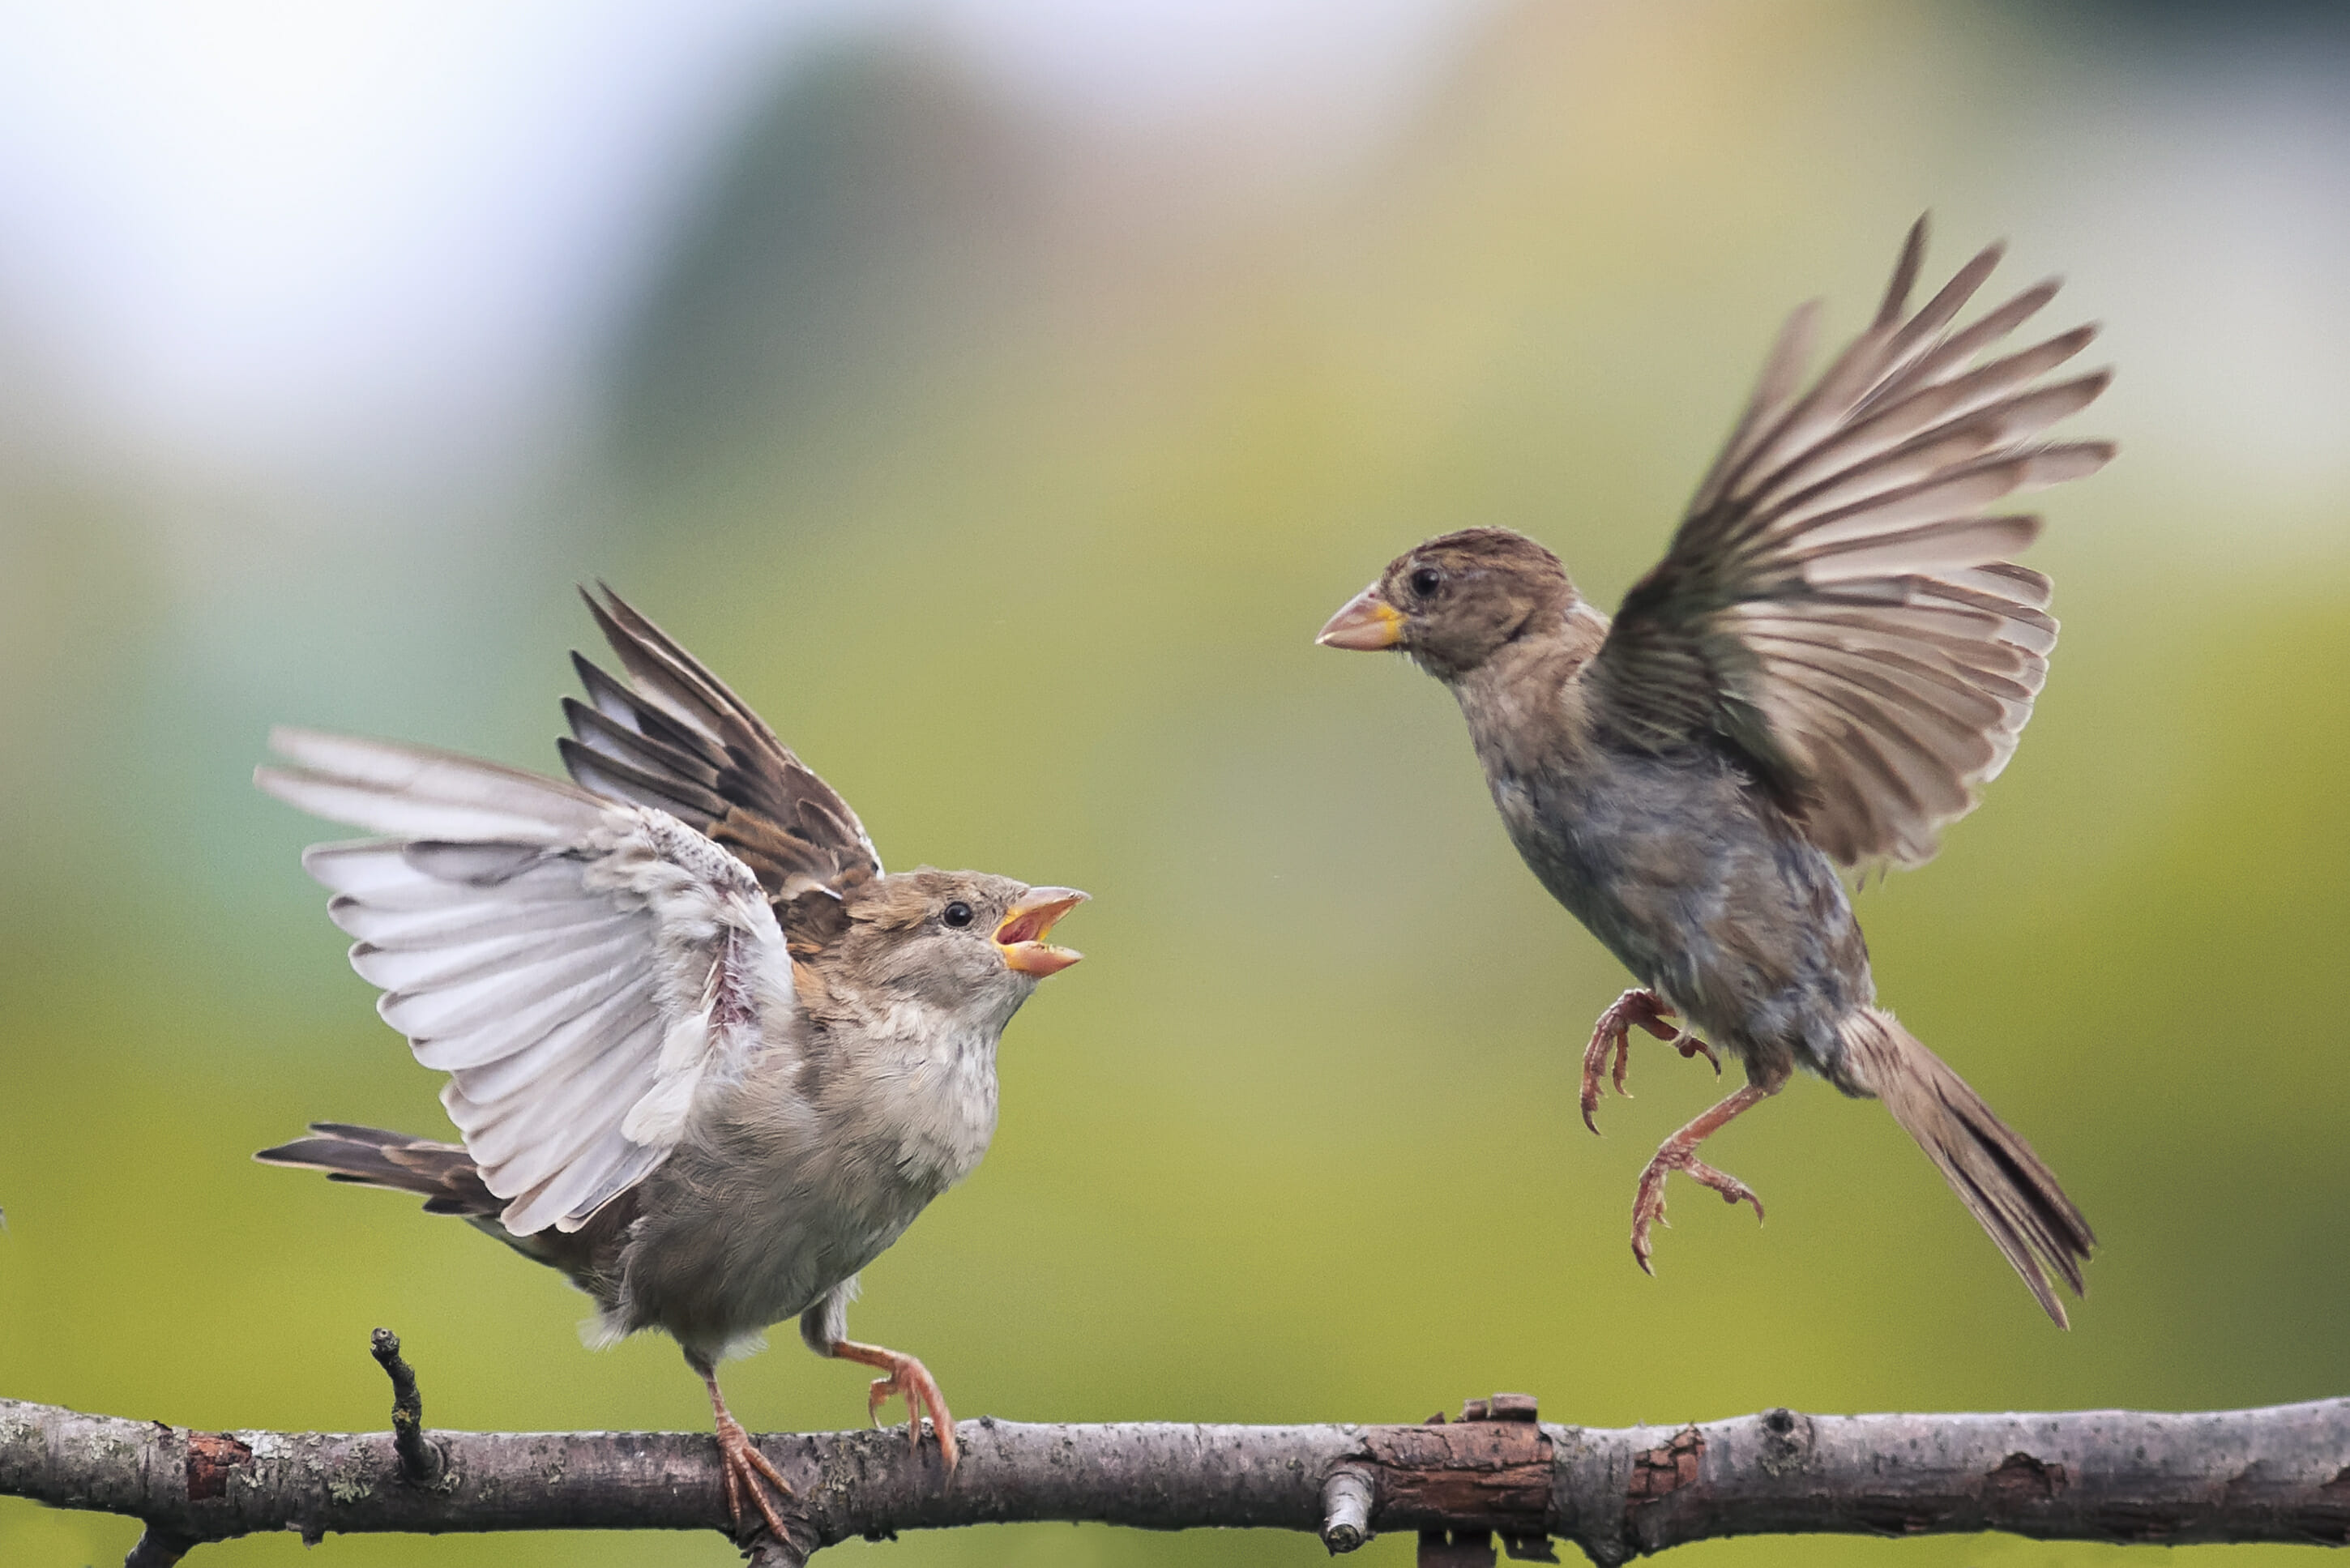 two birds fighting evil on a branch